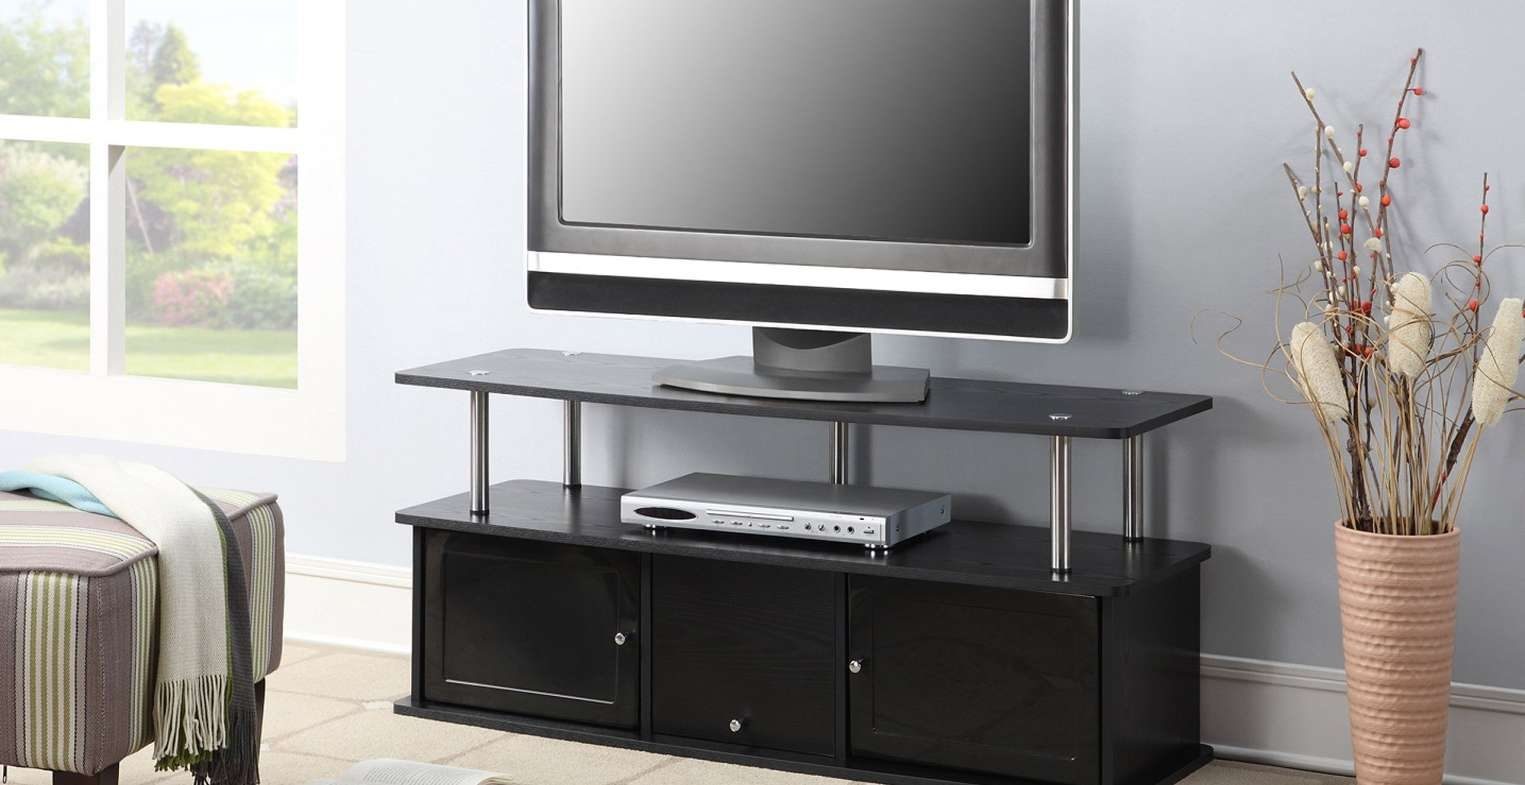 Tv : Tv Stands For Tube Tvs Top Tv Stands For Crt Tvs' Favorite Tv Pertaining To Tv Stands For Tube Tvs (View 6 of 15)